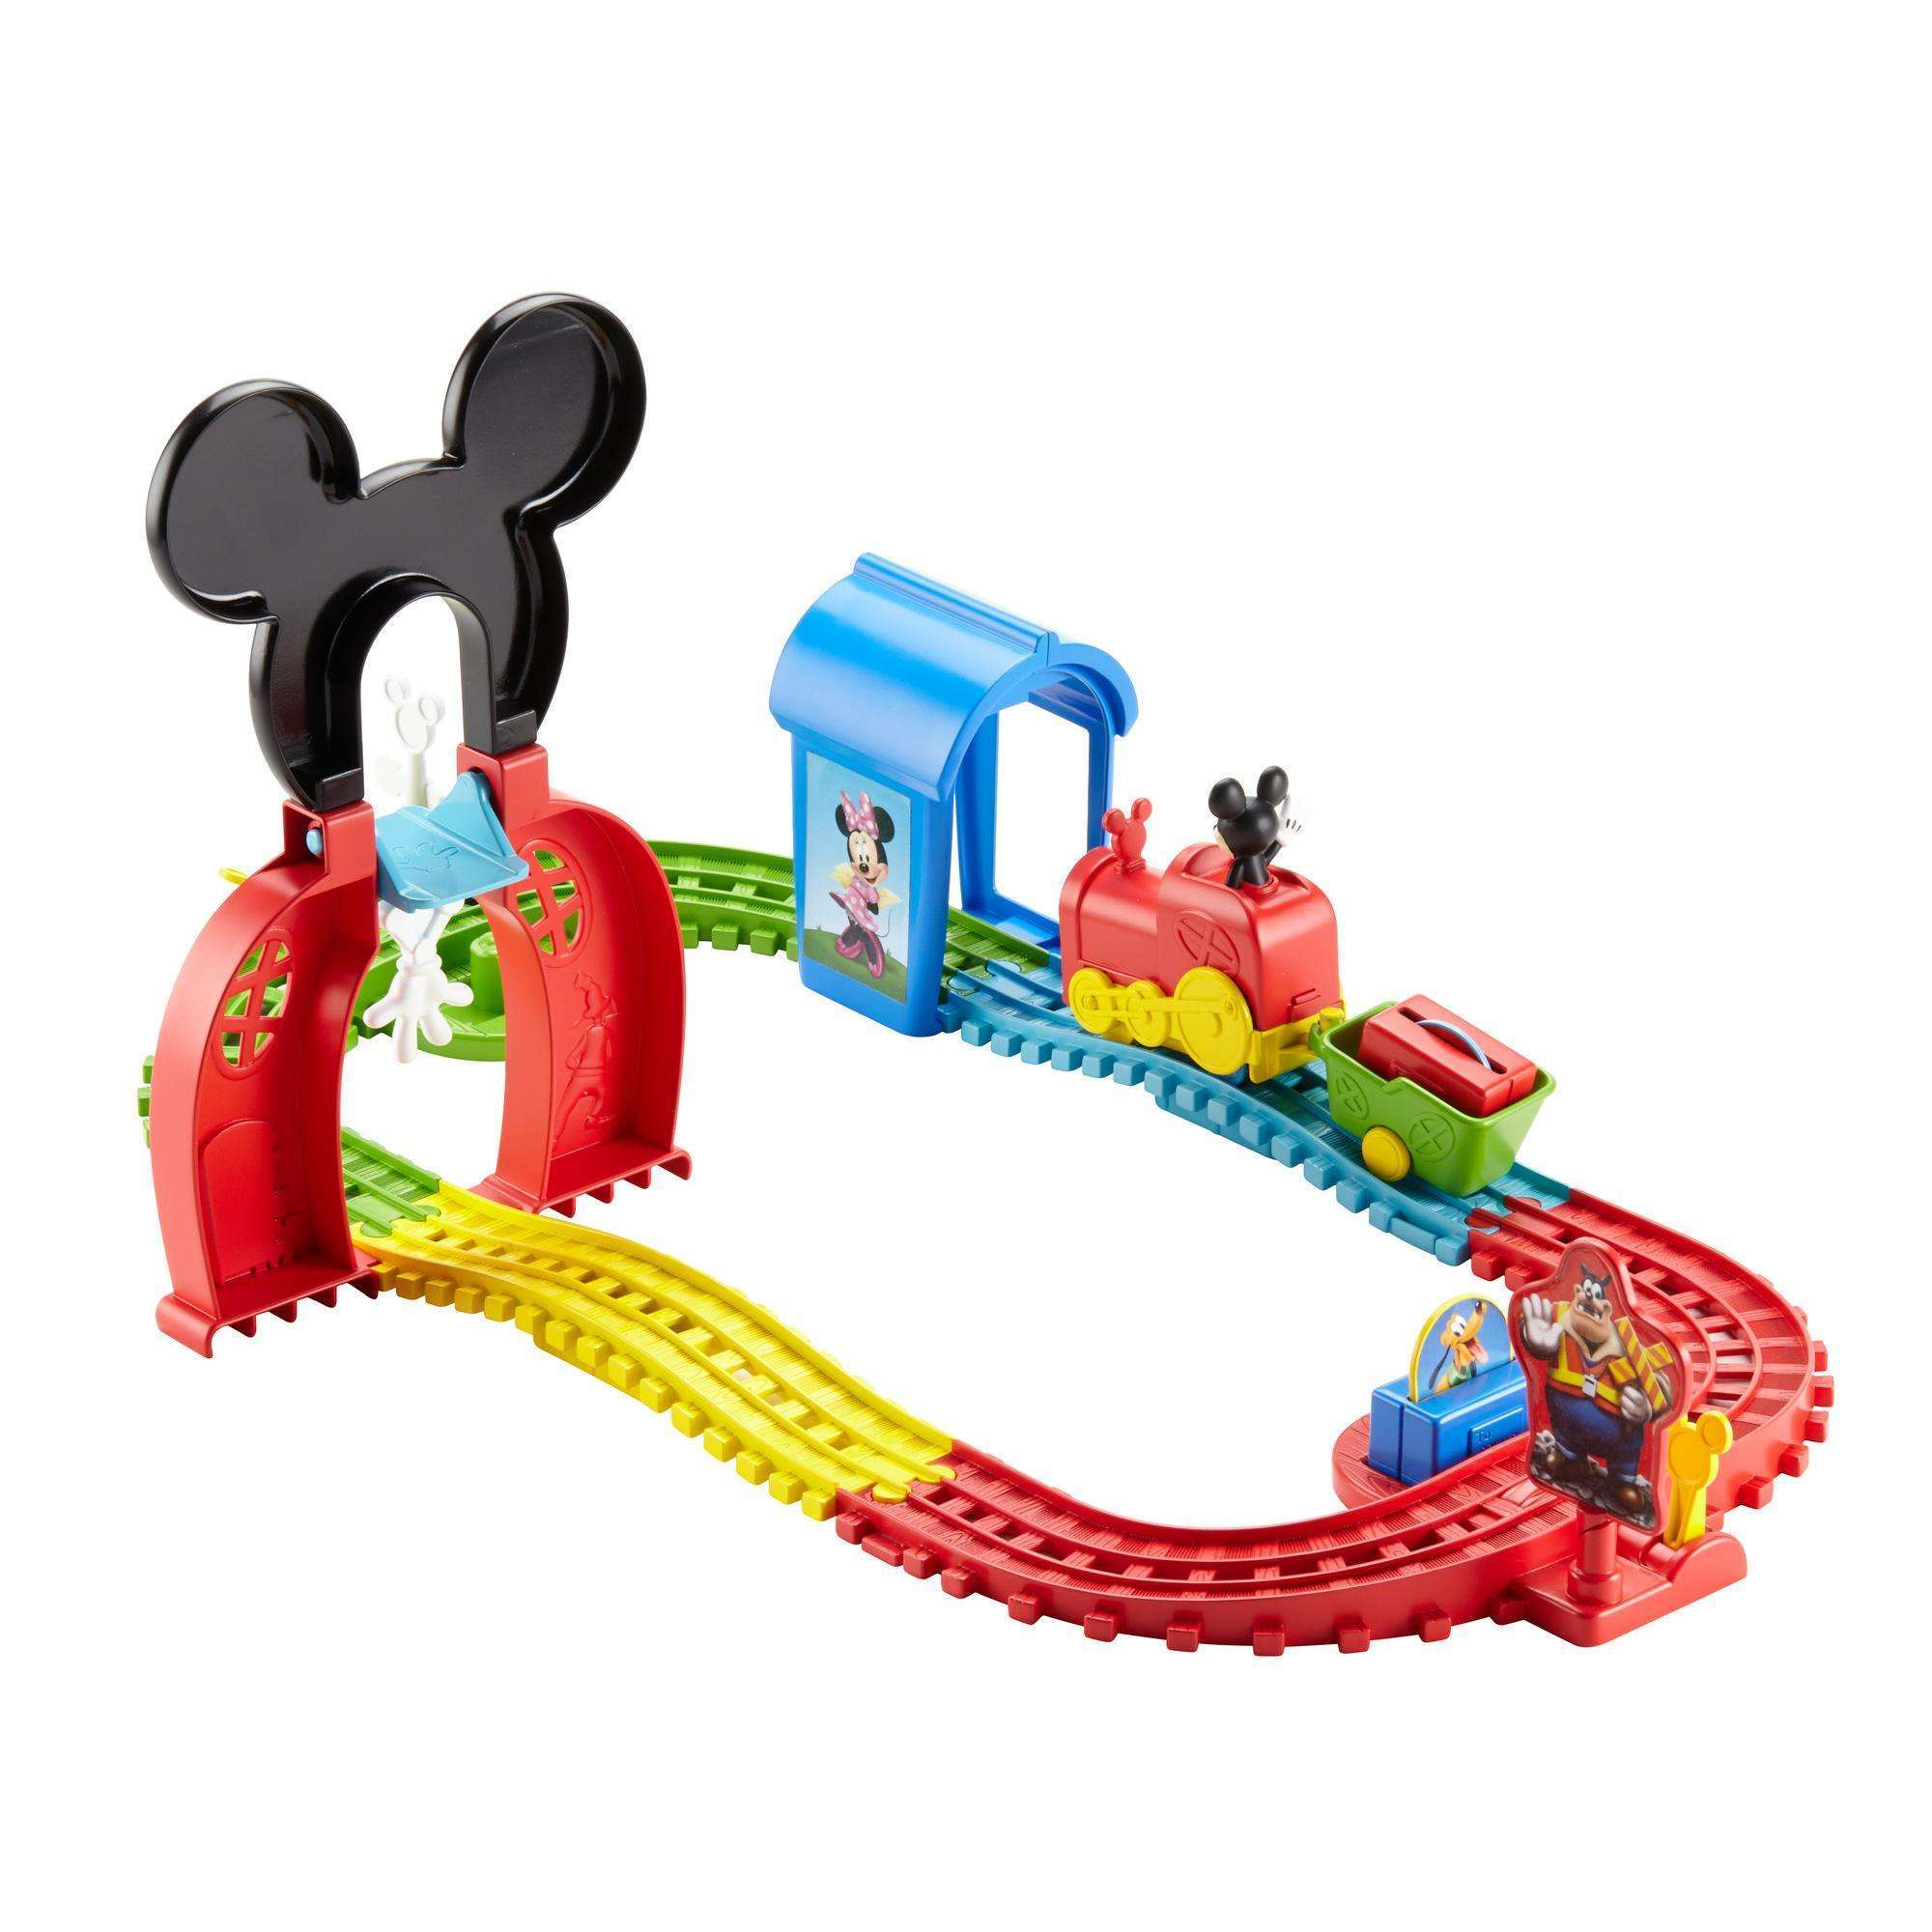 Disney Mickey Mouse Clubhouse Mouska Train Express Playset by FO SHAN CITY NANHAI MATTEL